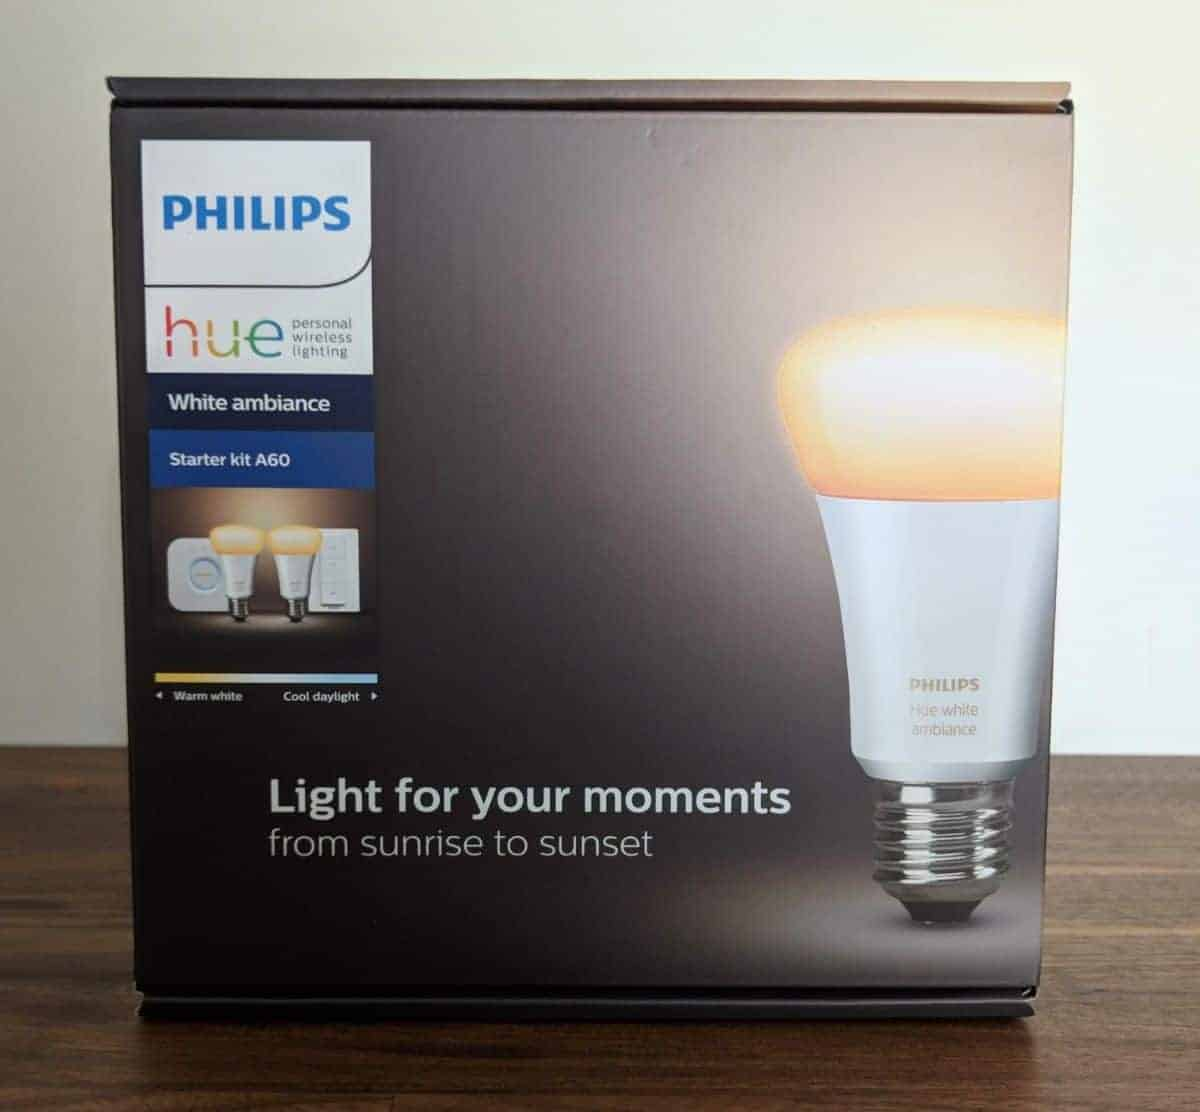 Philips-Hue-Ambiance-Photos-8 Philips Hue Review Part 2